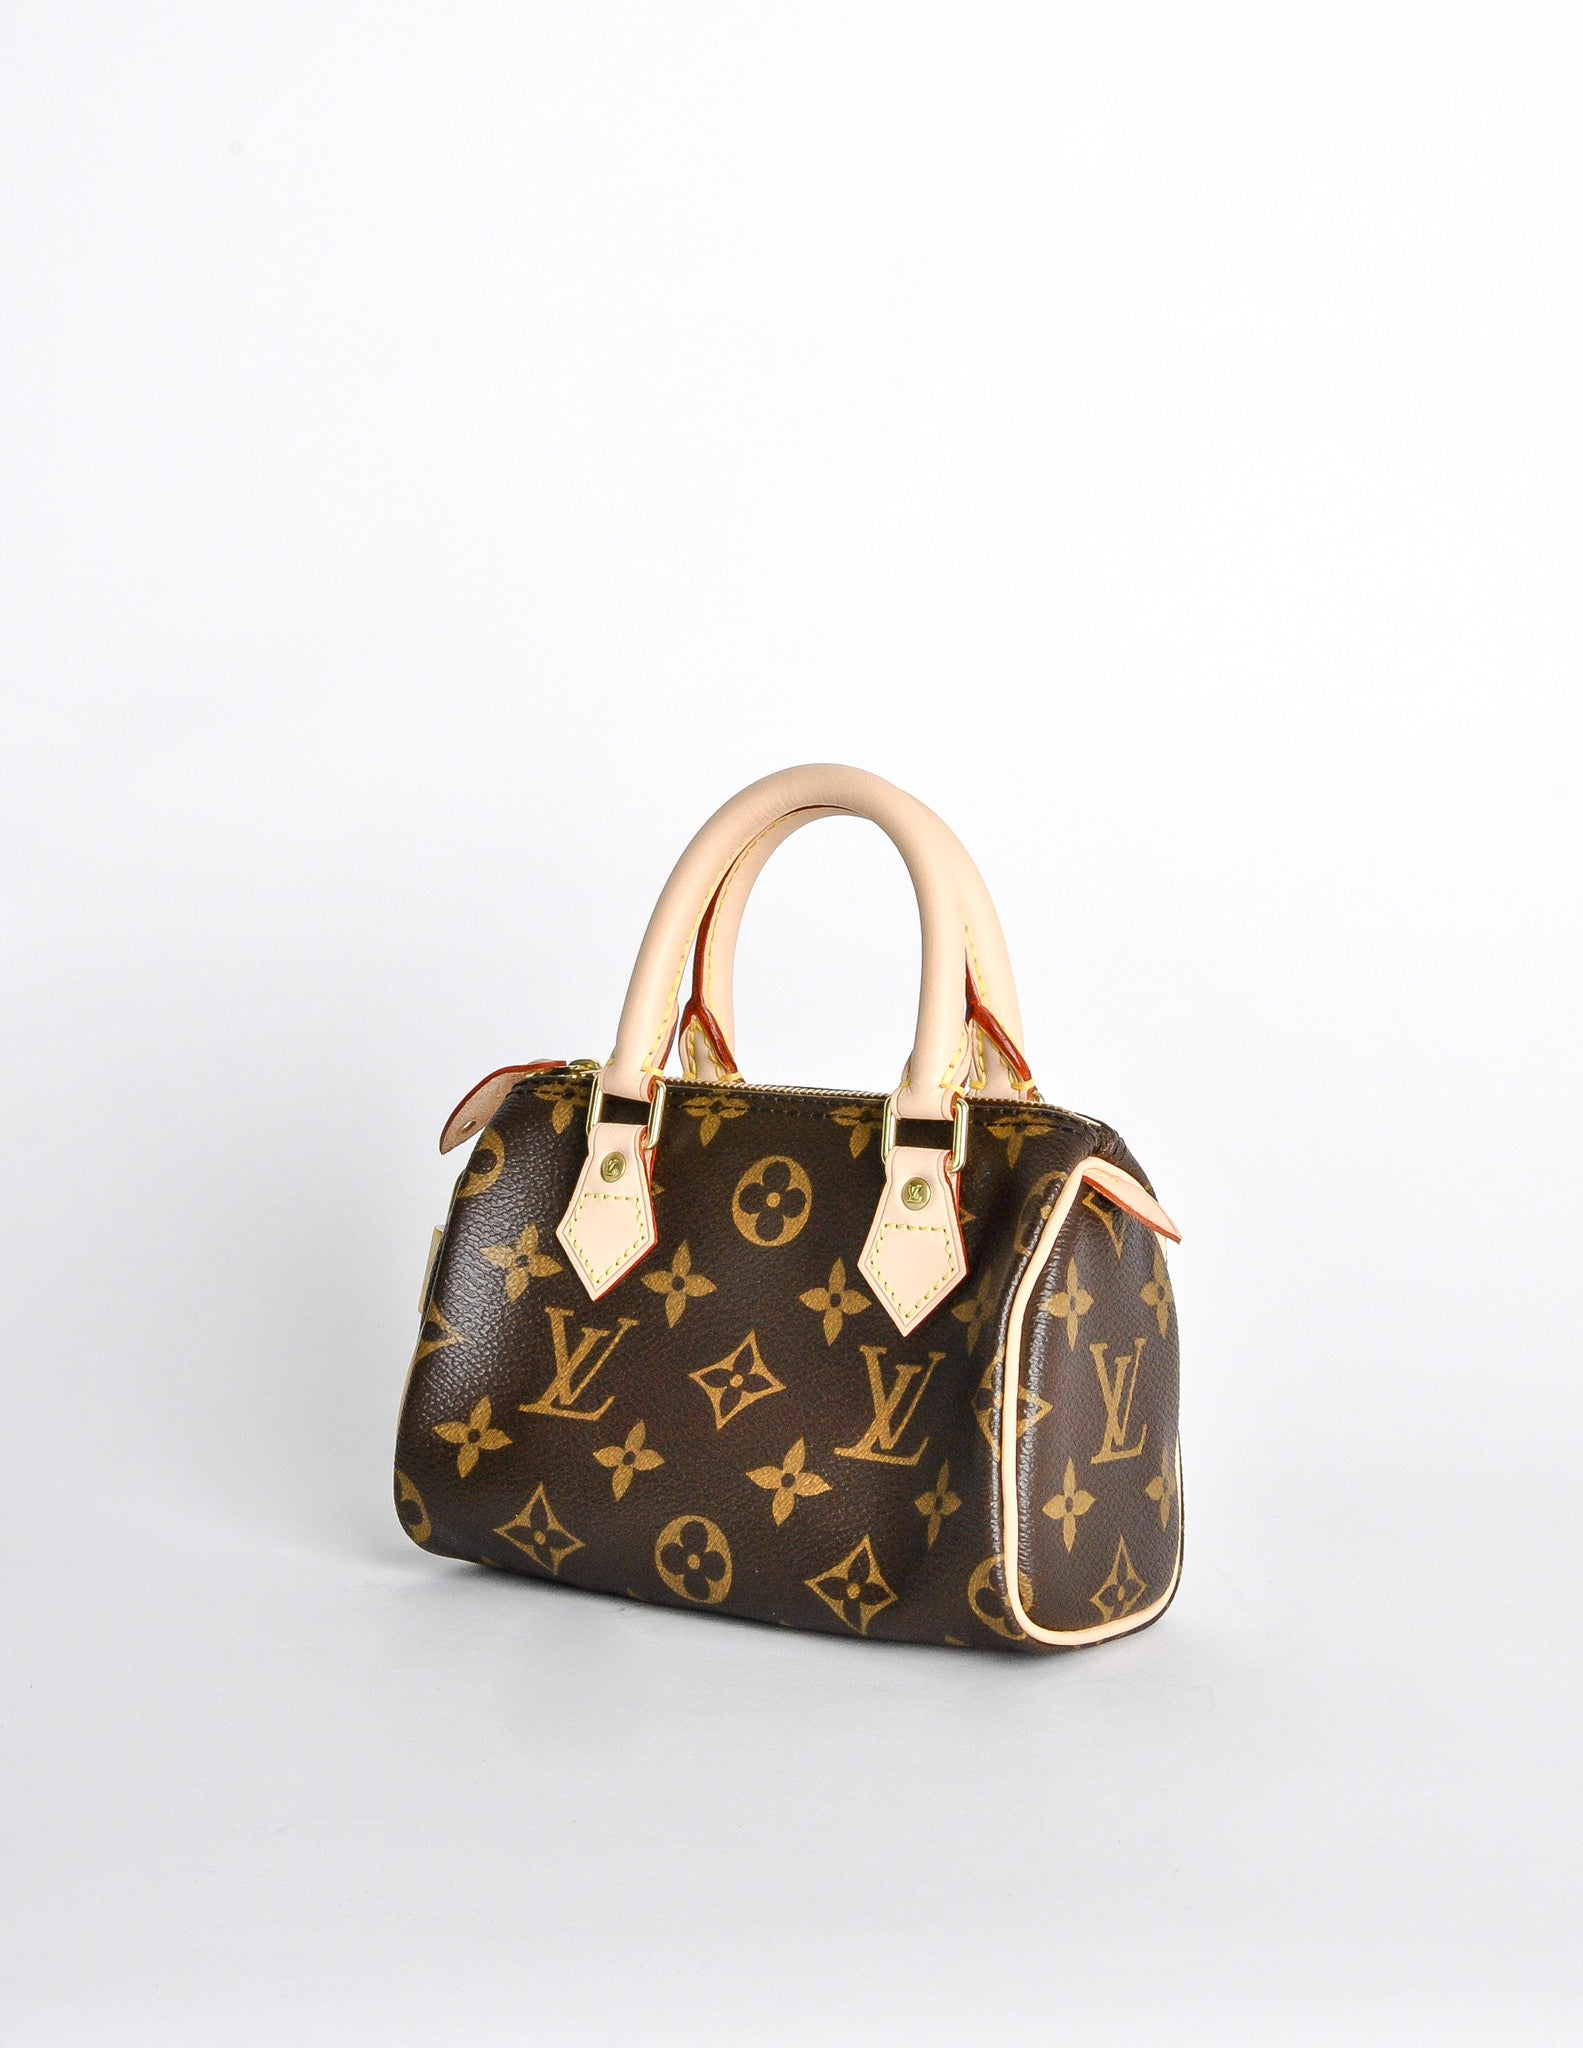 4db02d43d0ef Louis Vuitton Monogram Mini Sac Crossbody Bag - from